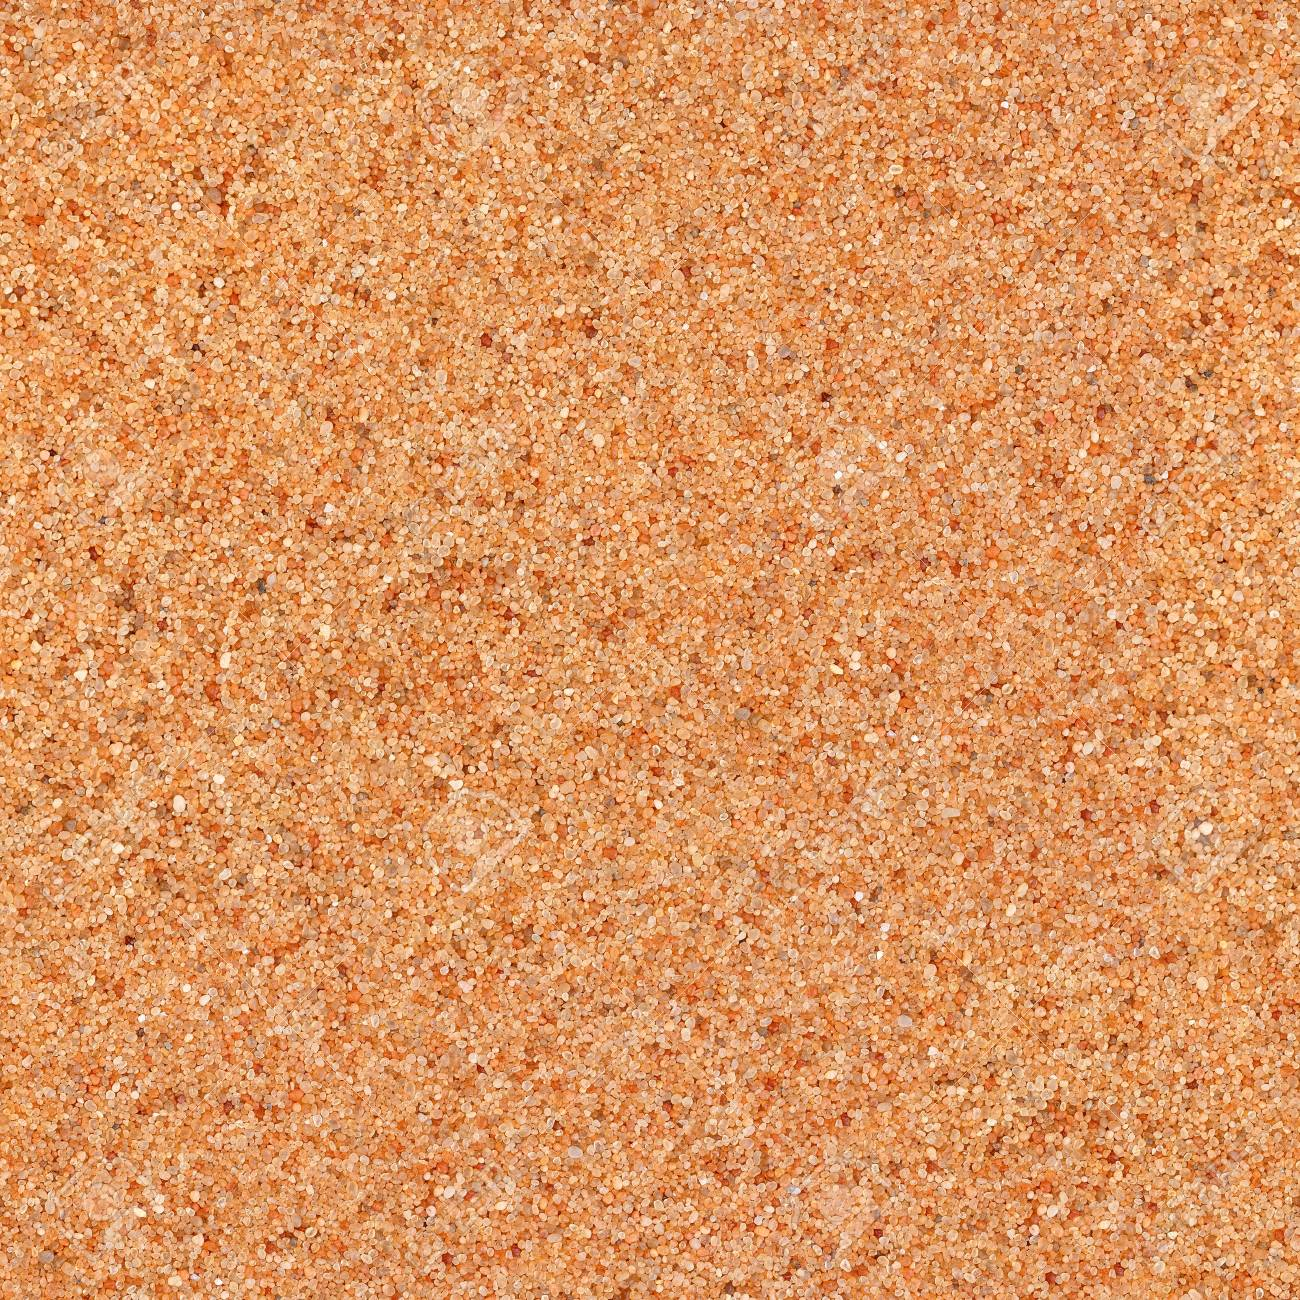 Texture From Orange Sand Seamless Square Texture Tile Ready Stock